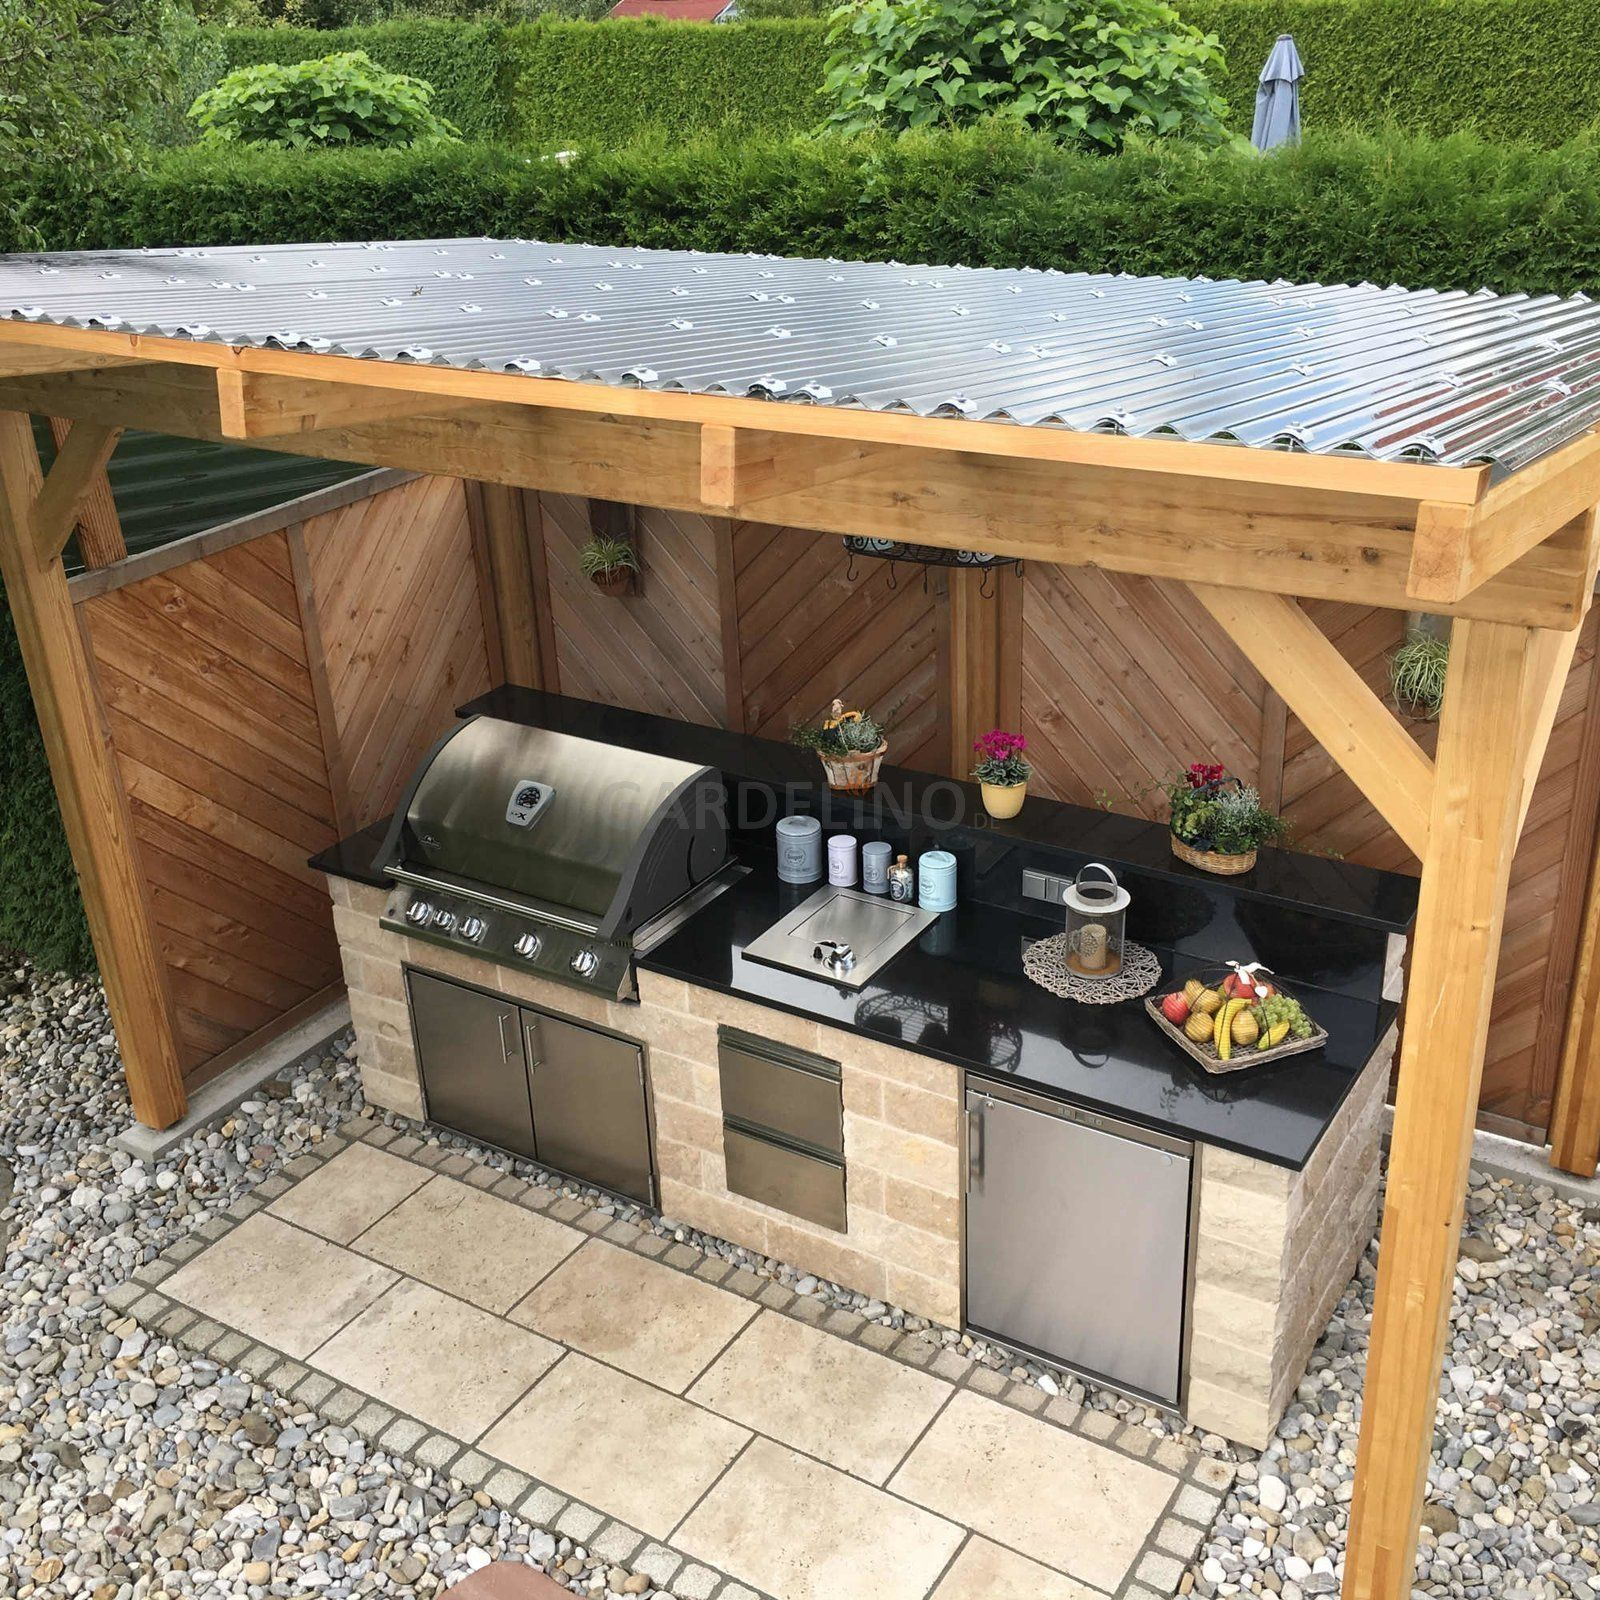 Amazing 42 Get Some Ideas To Make Outdoor Kitchen Decoration Http Decoraiso Com Index Php 2018 09 Outdoor Kitchen Decor Diy Outdoor Kitchen Backyard Kitchen